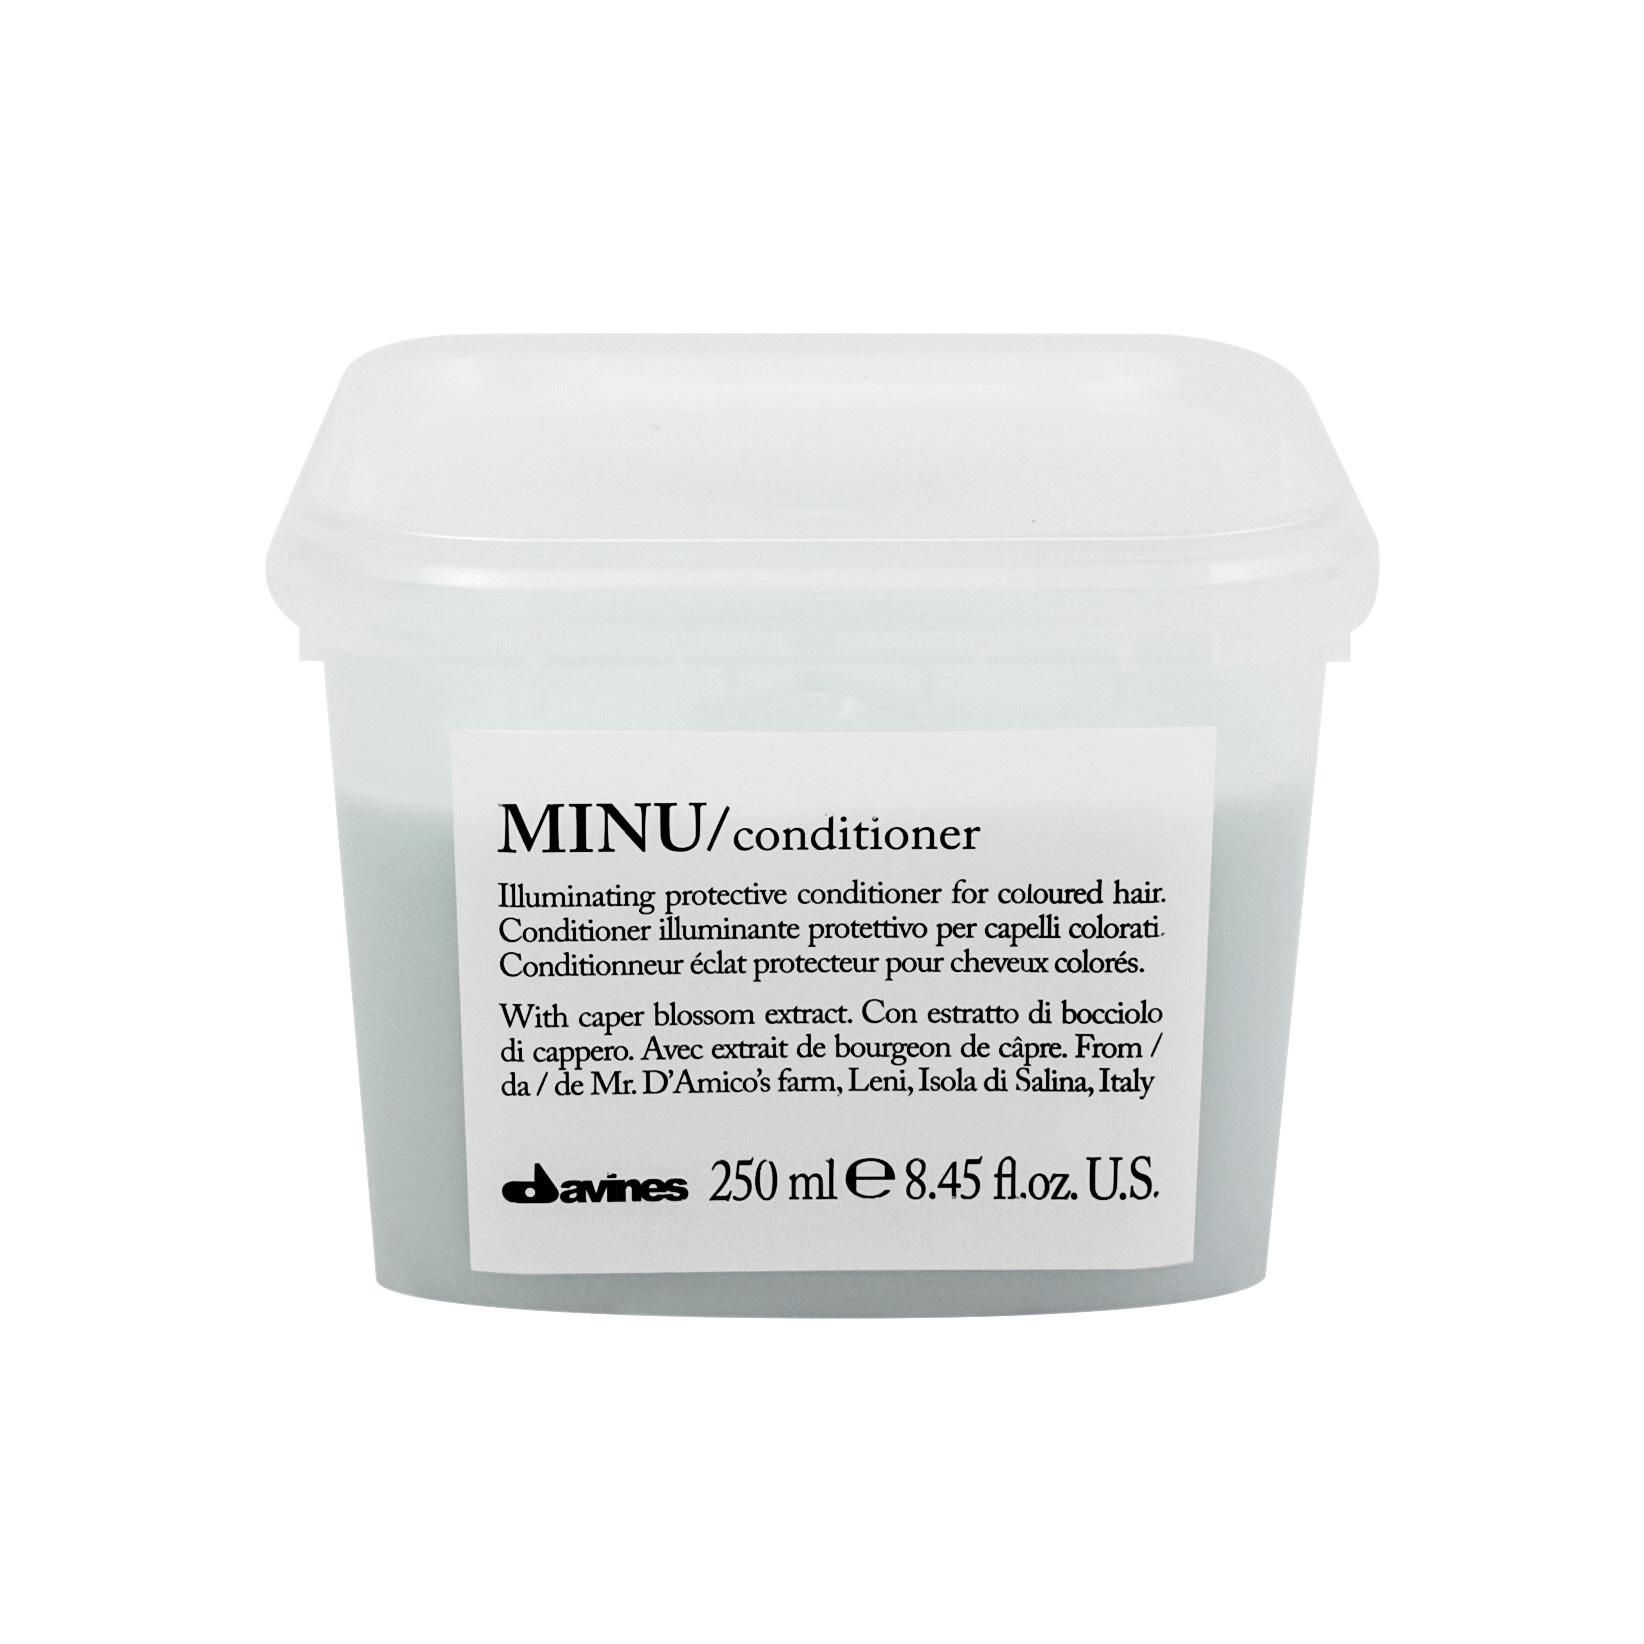 MINU Hair Conditioner